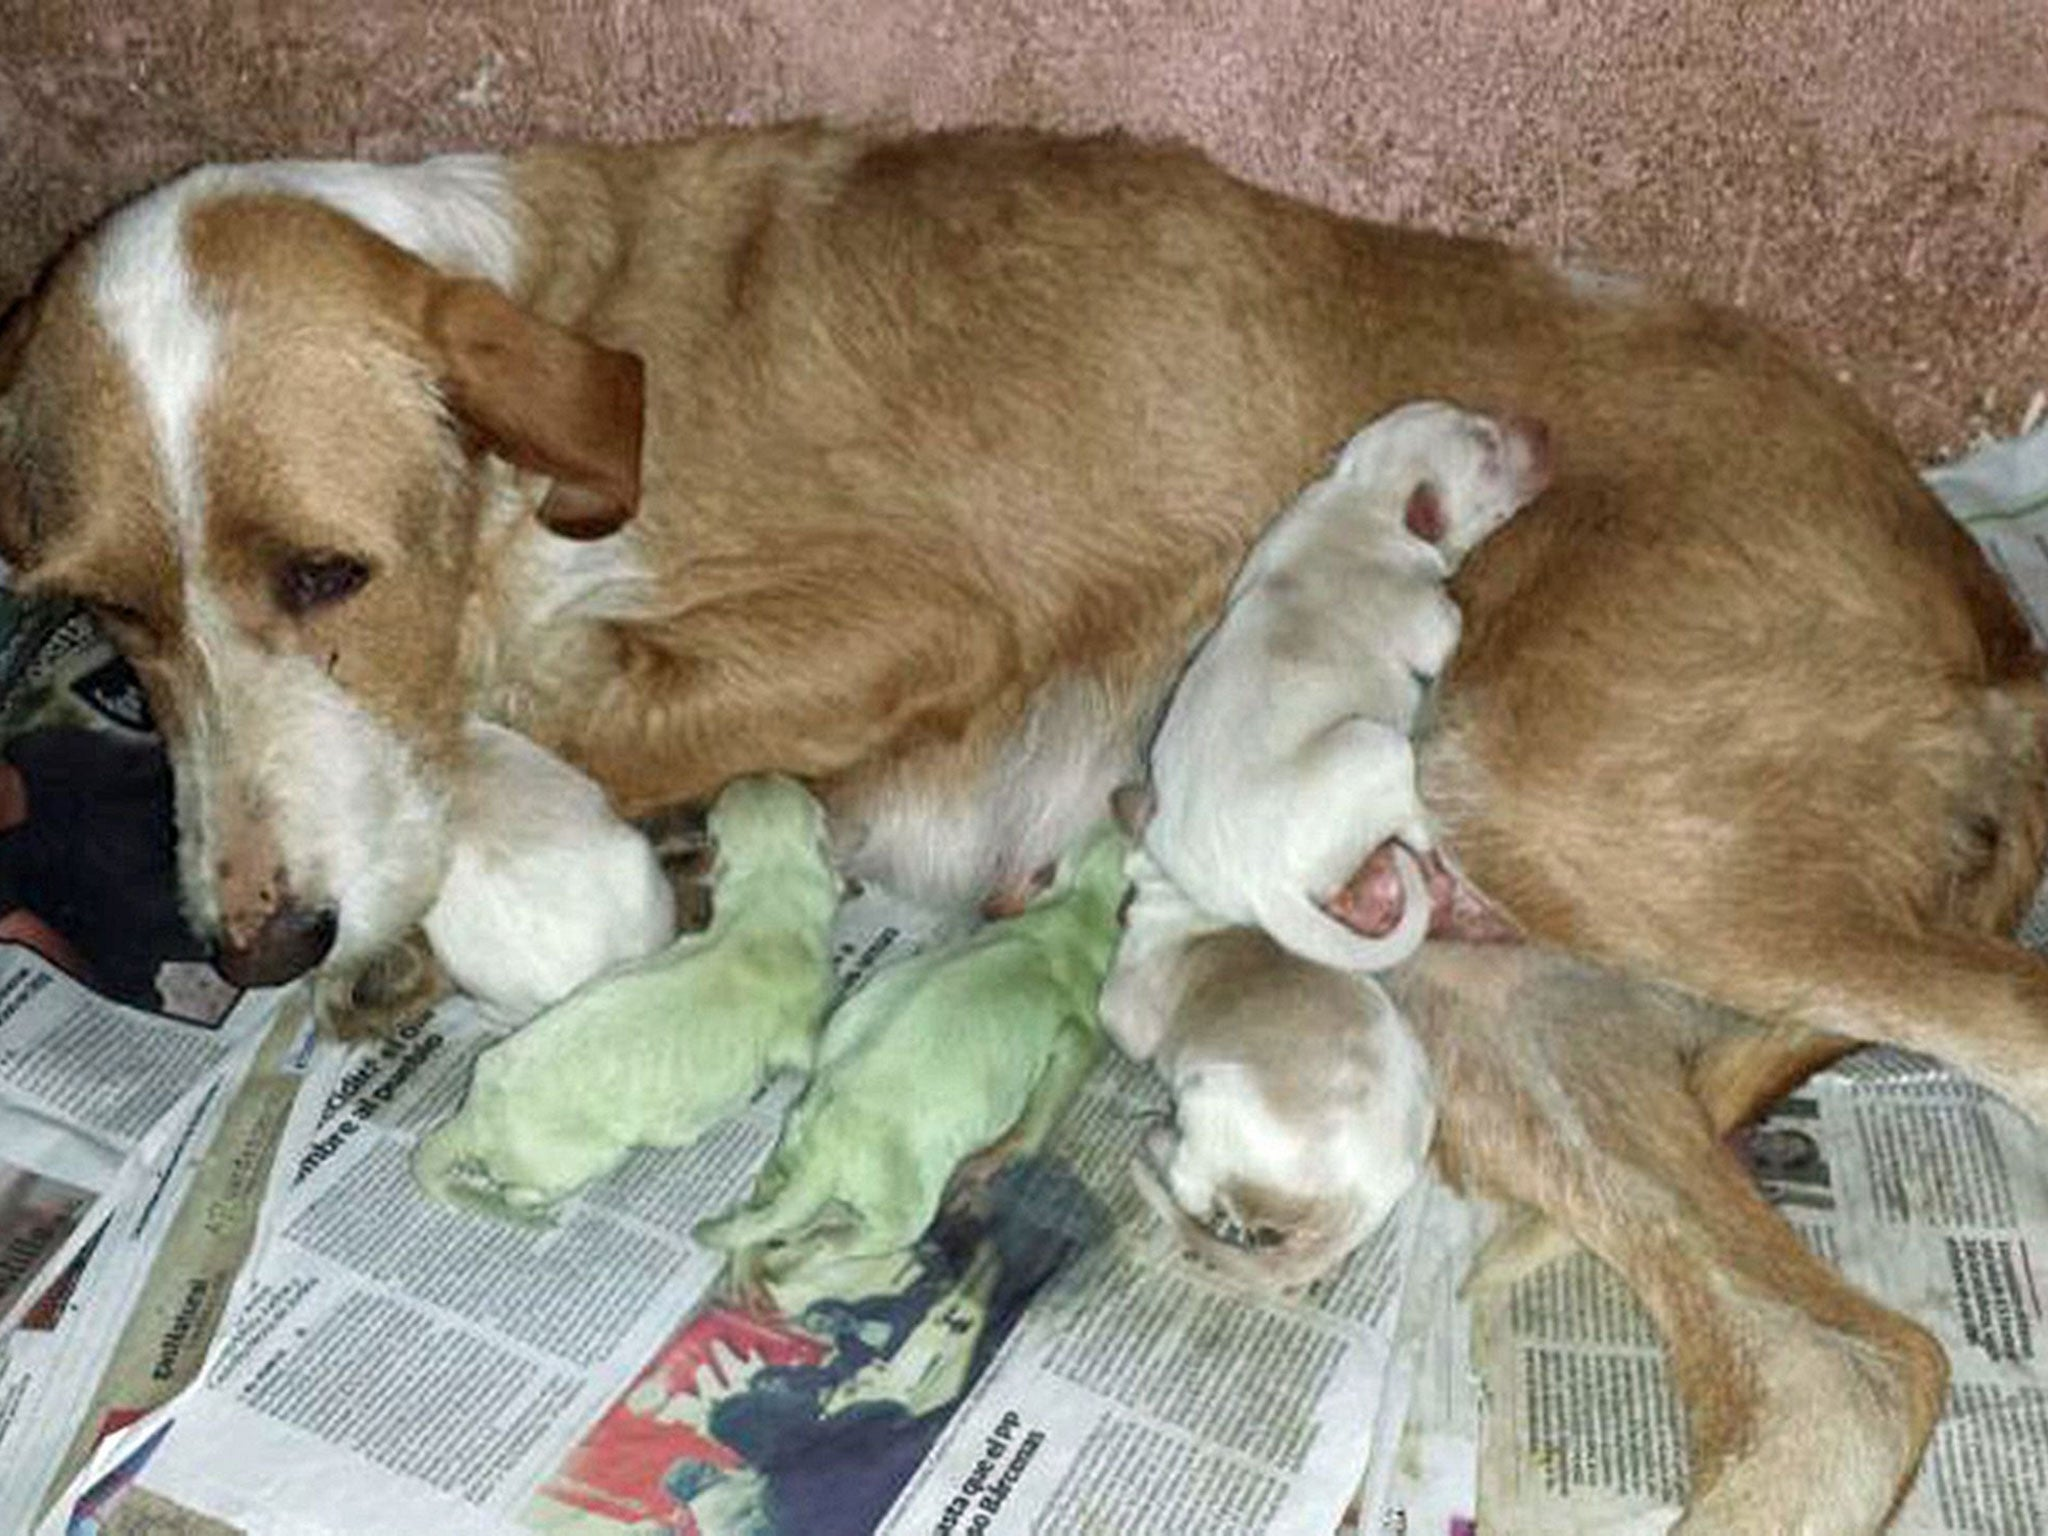 Minty Green Spanish Dog Gives Birth To Bright Green Puppies The